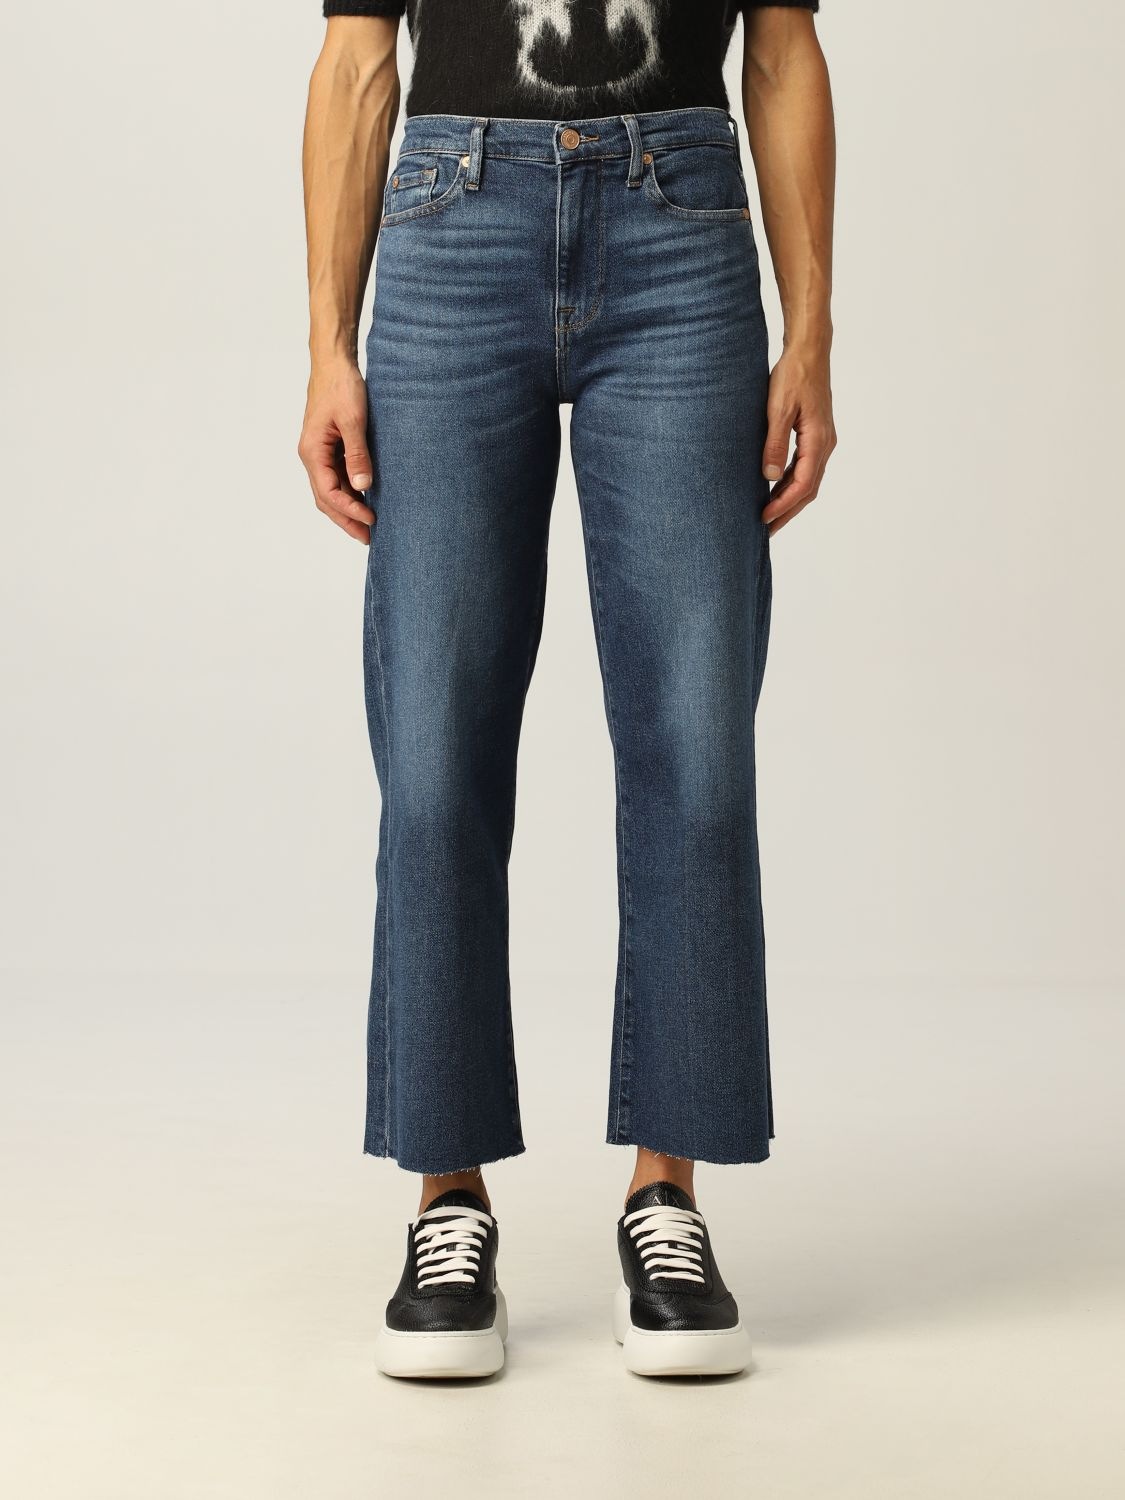 Jeans 7 For All Mankind: Jeans donna 7 For All Mankind denim 1